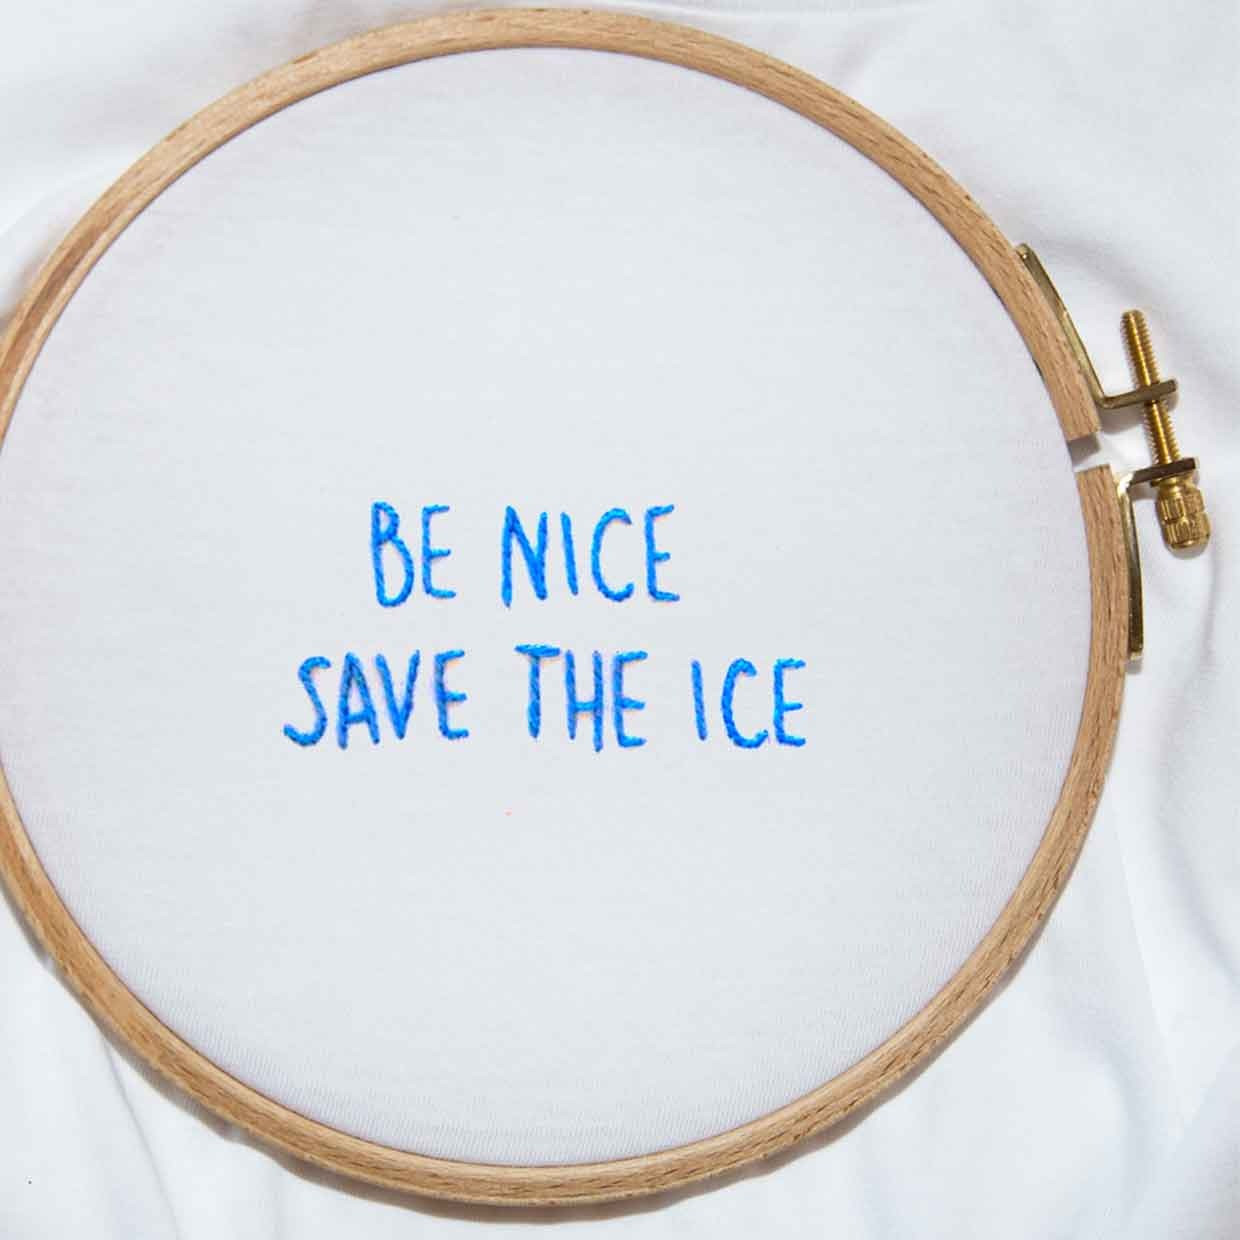 The SAVE THE ICE ultimate tee